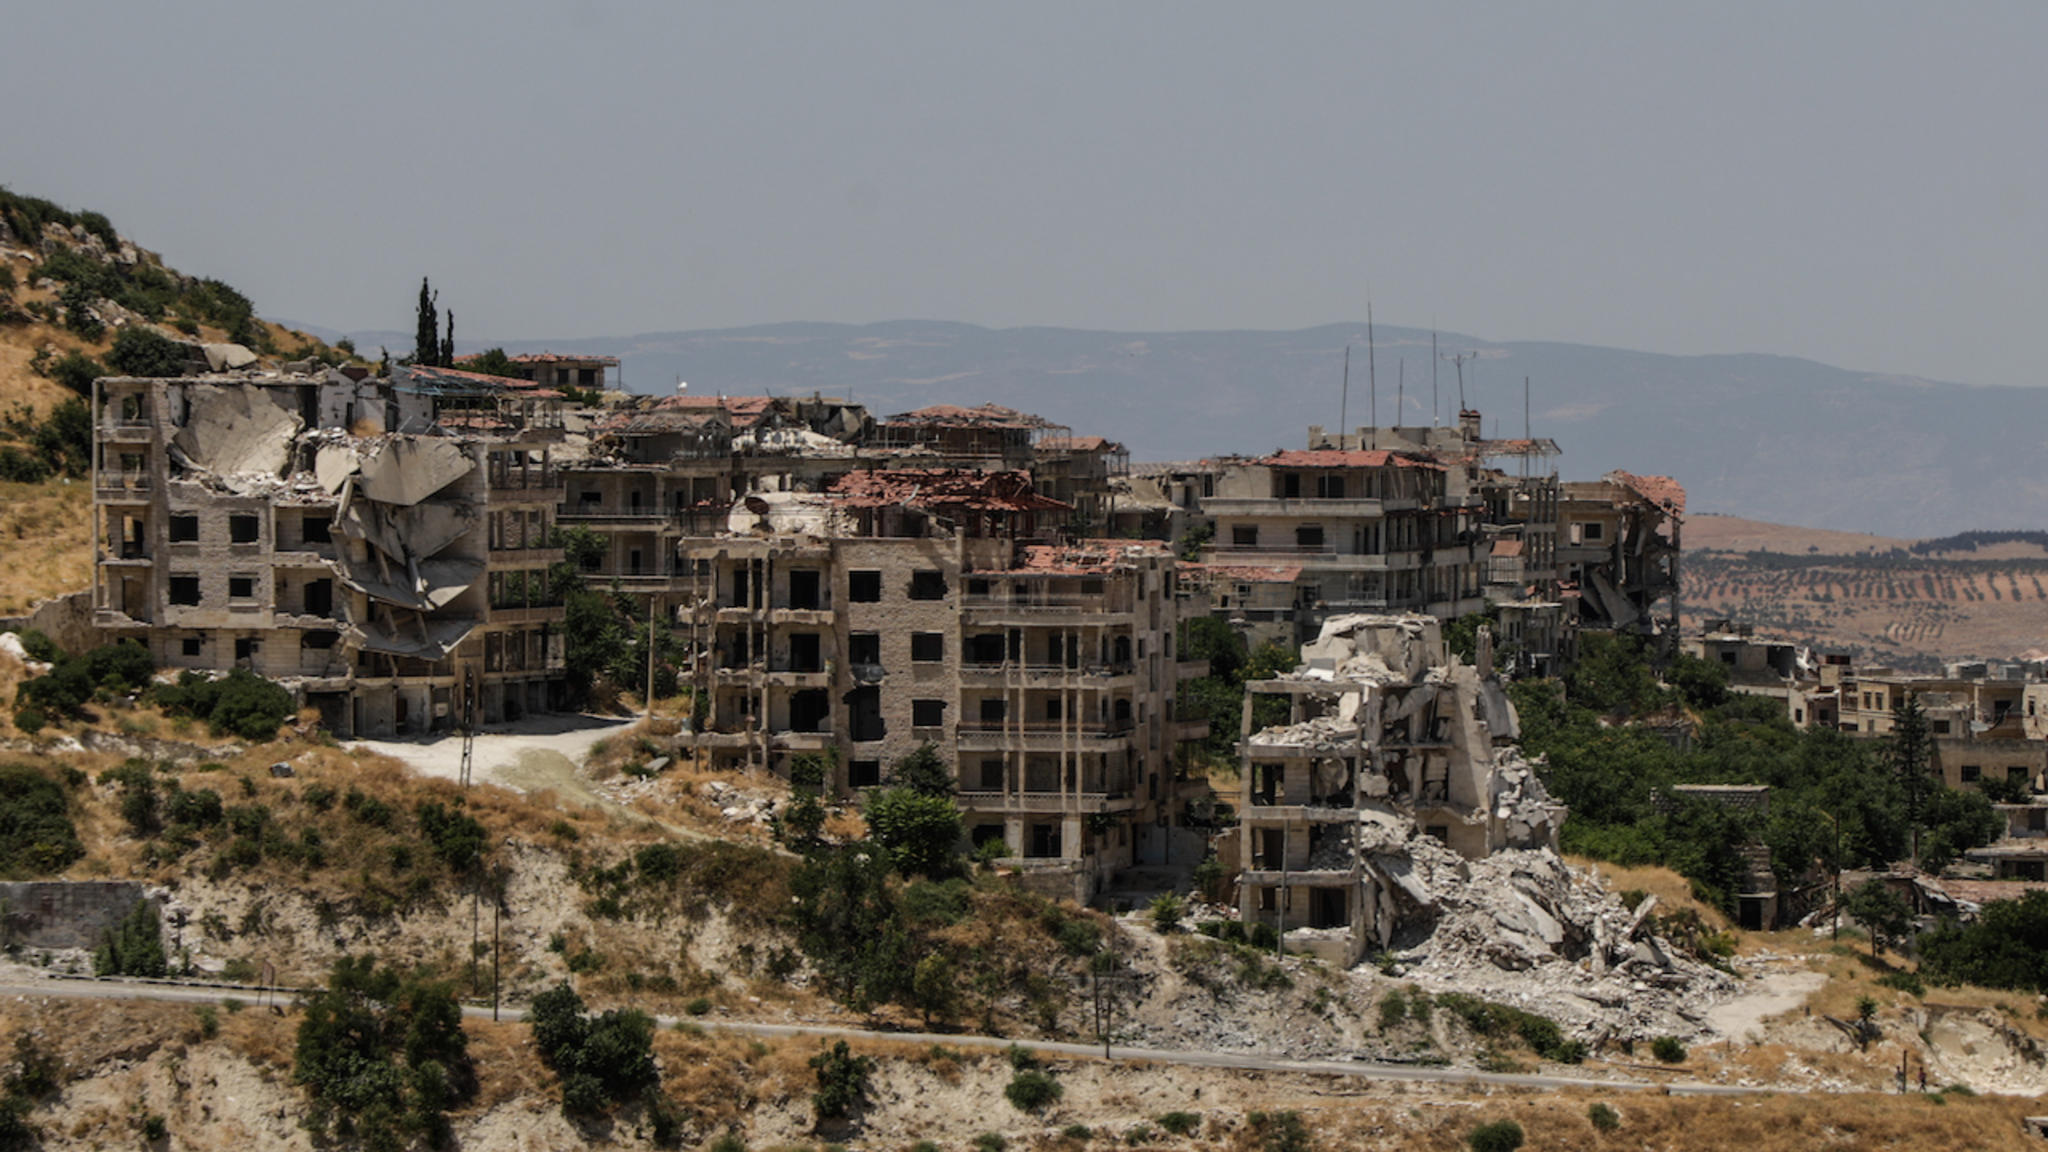 Destroyed buildings in Ariha, a city in Idlib province, Syria.